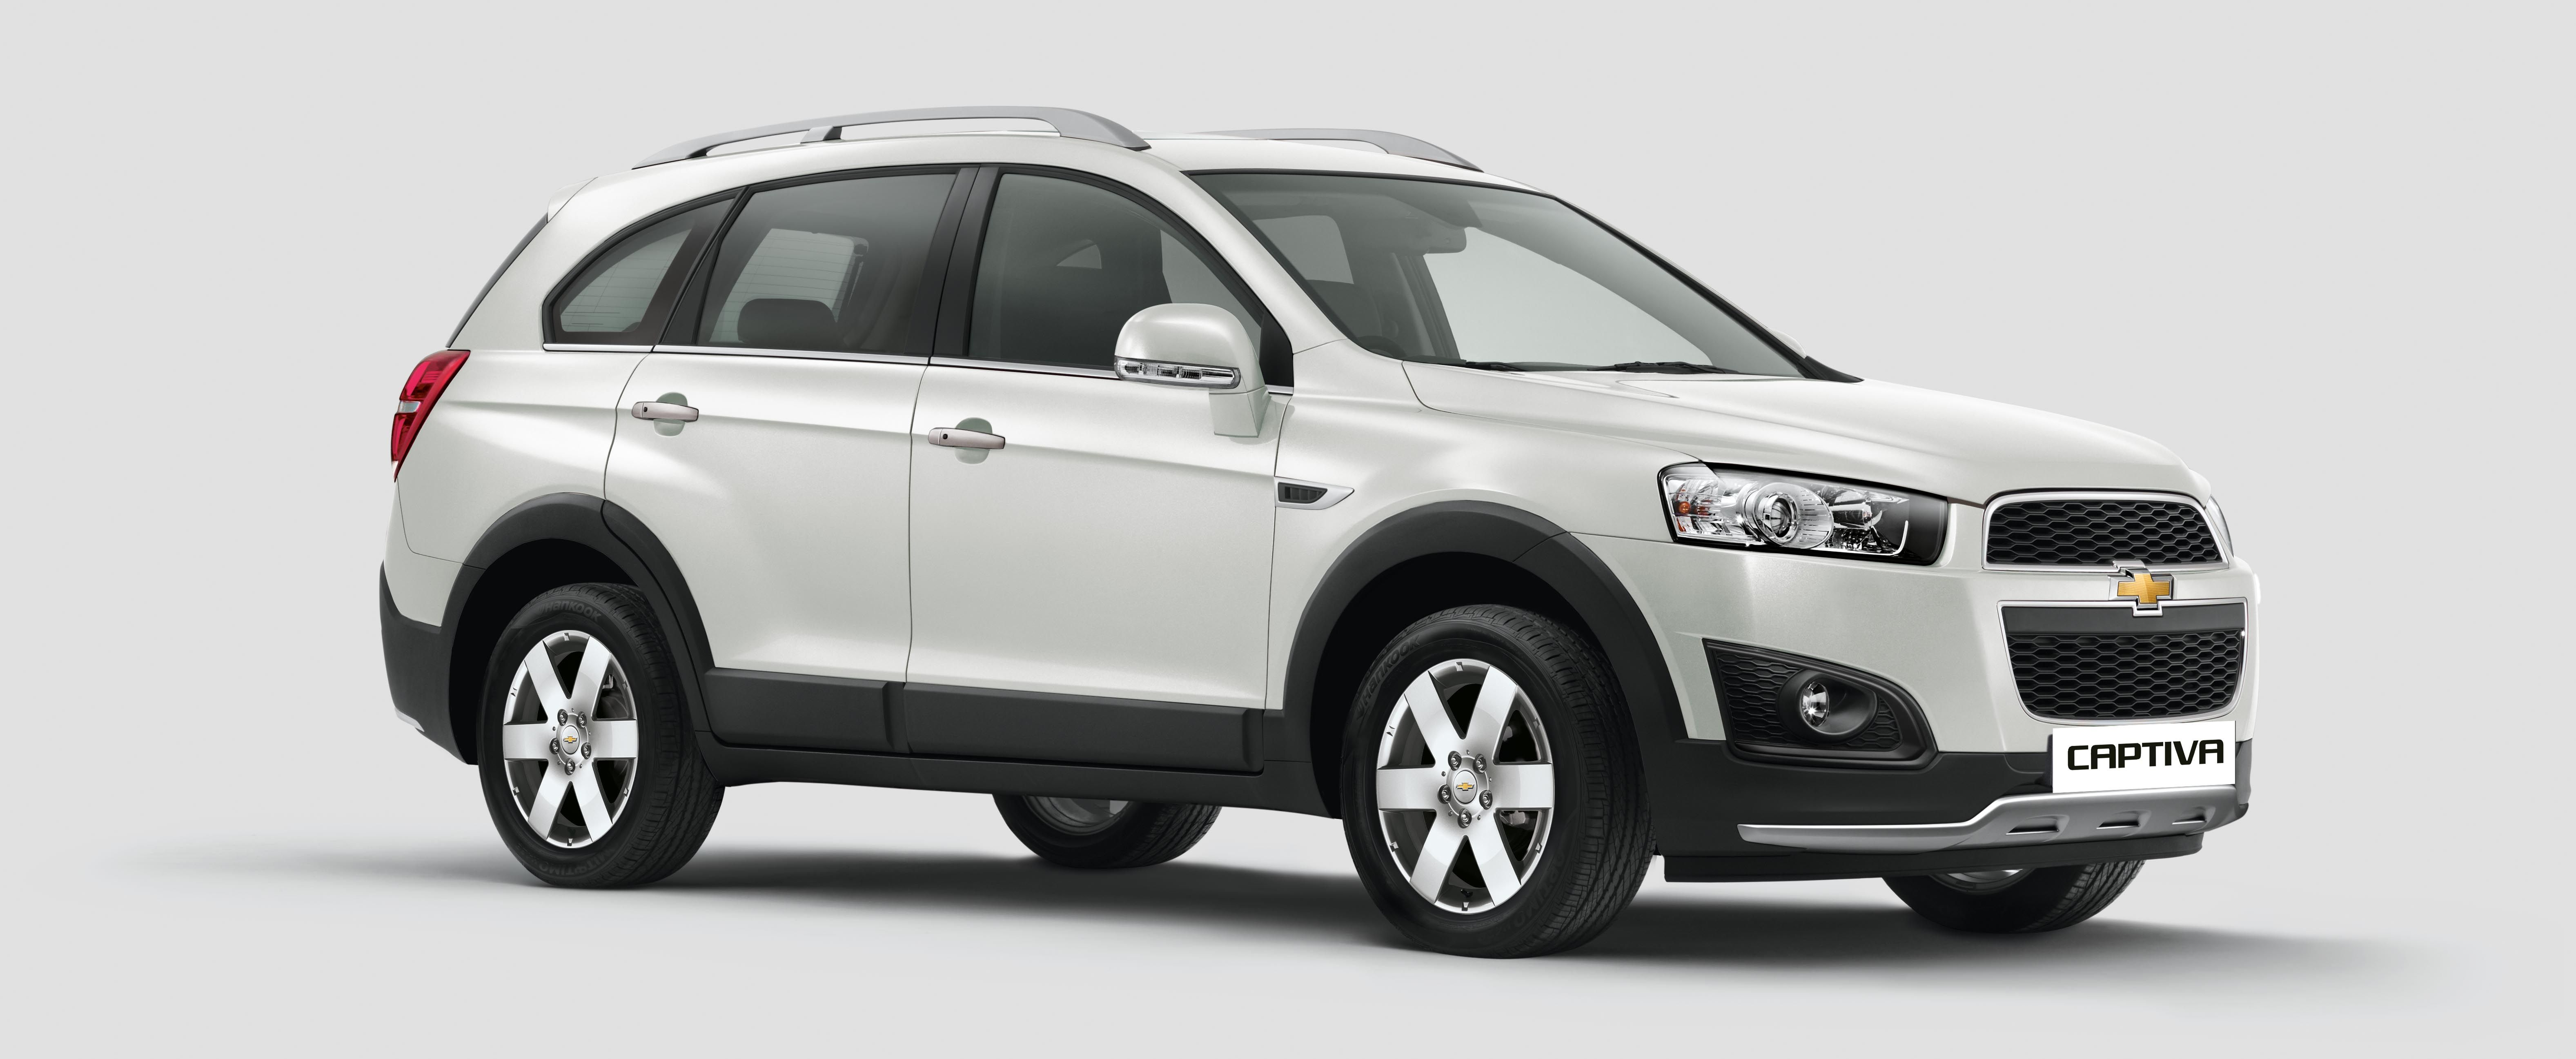 MY 15 Chevrolet Captiva launched by General Motors A2Z